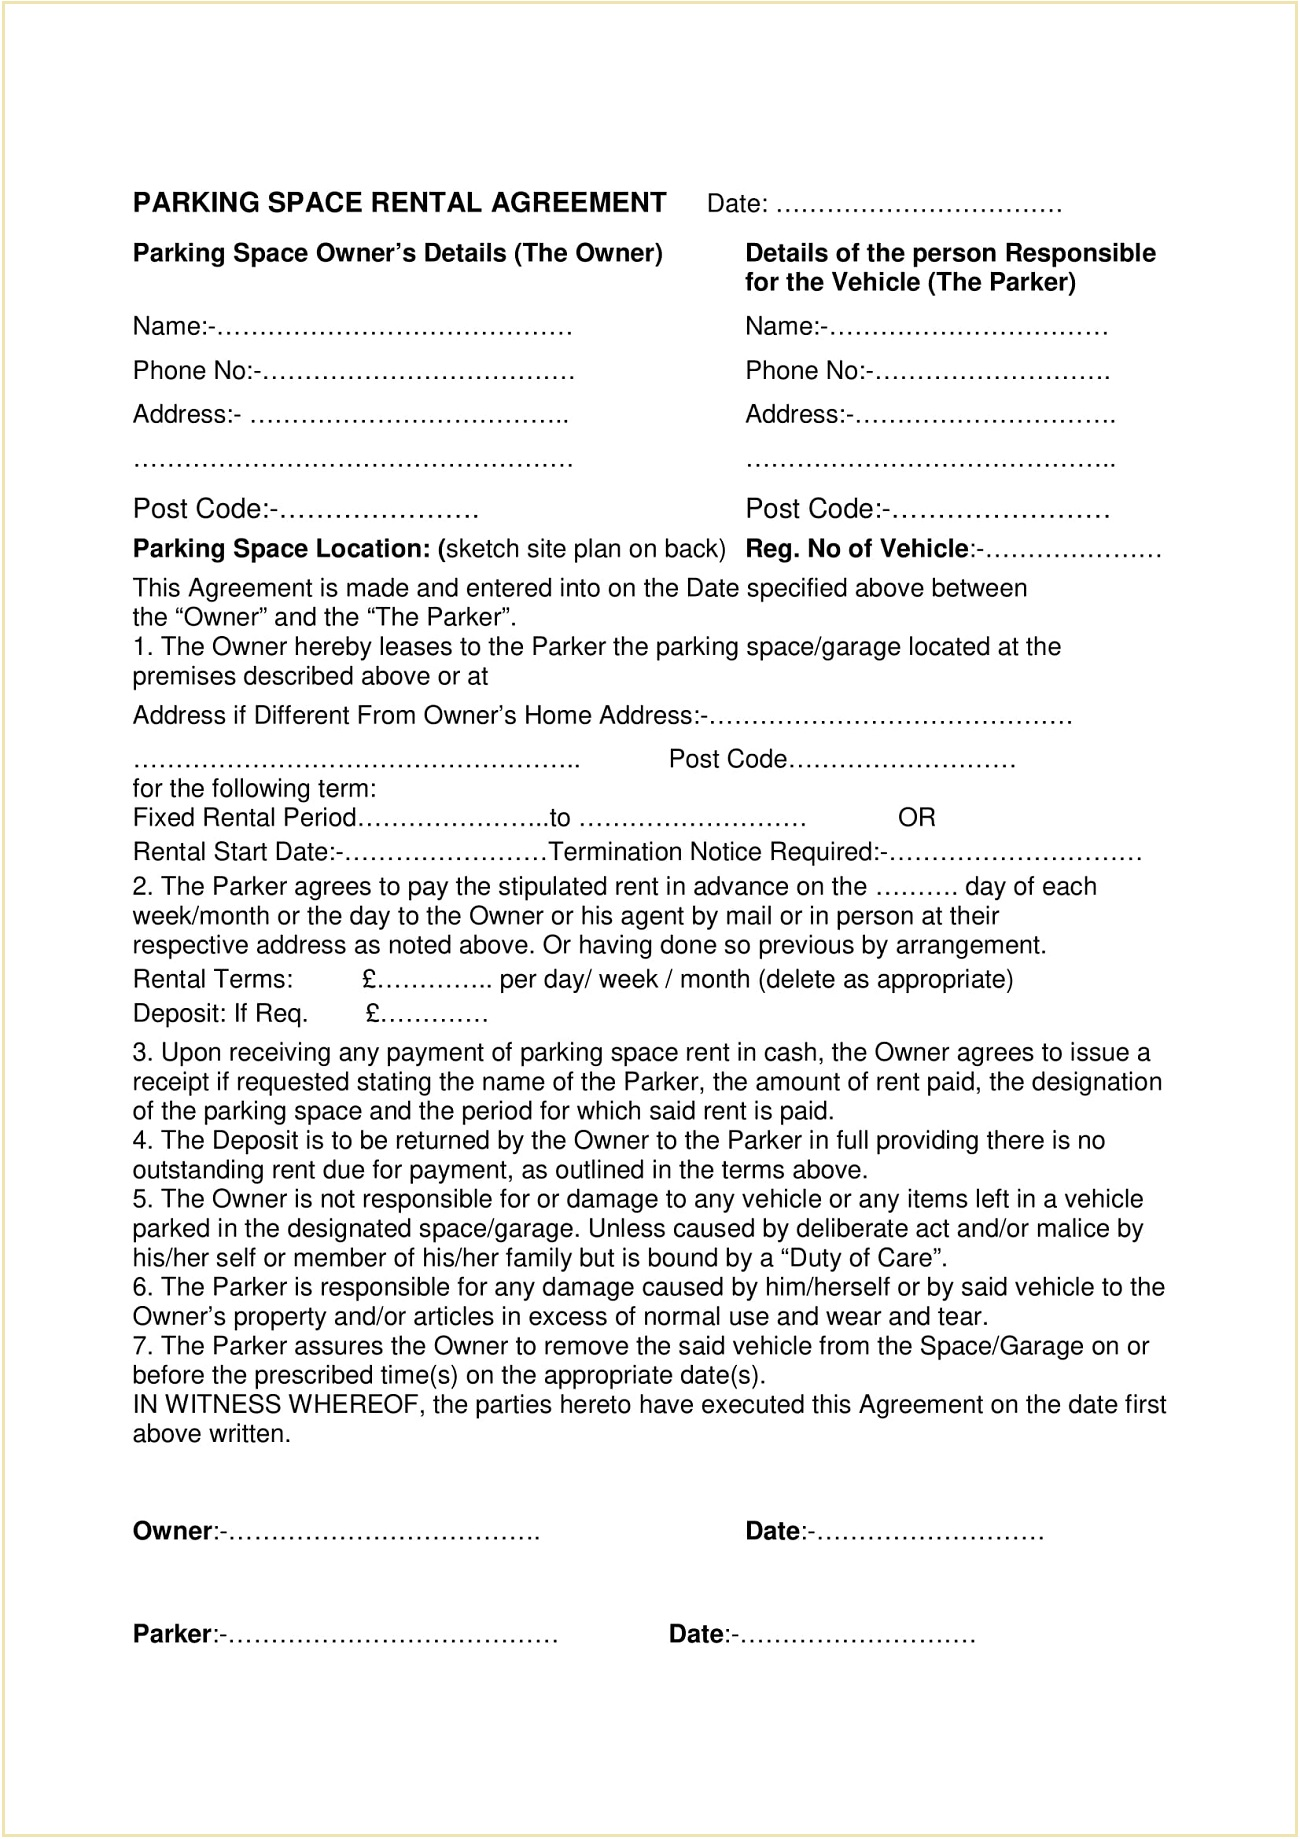 Parking Space Rental Agreement Form Template PDF